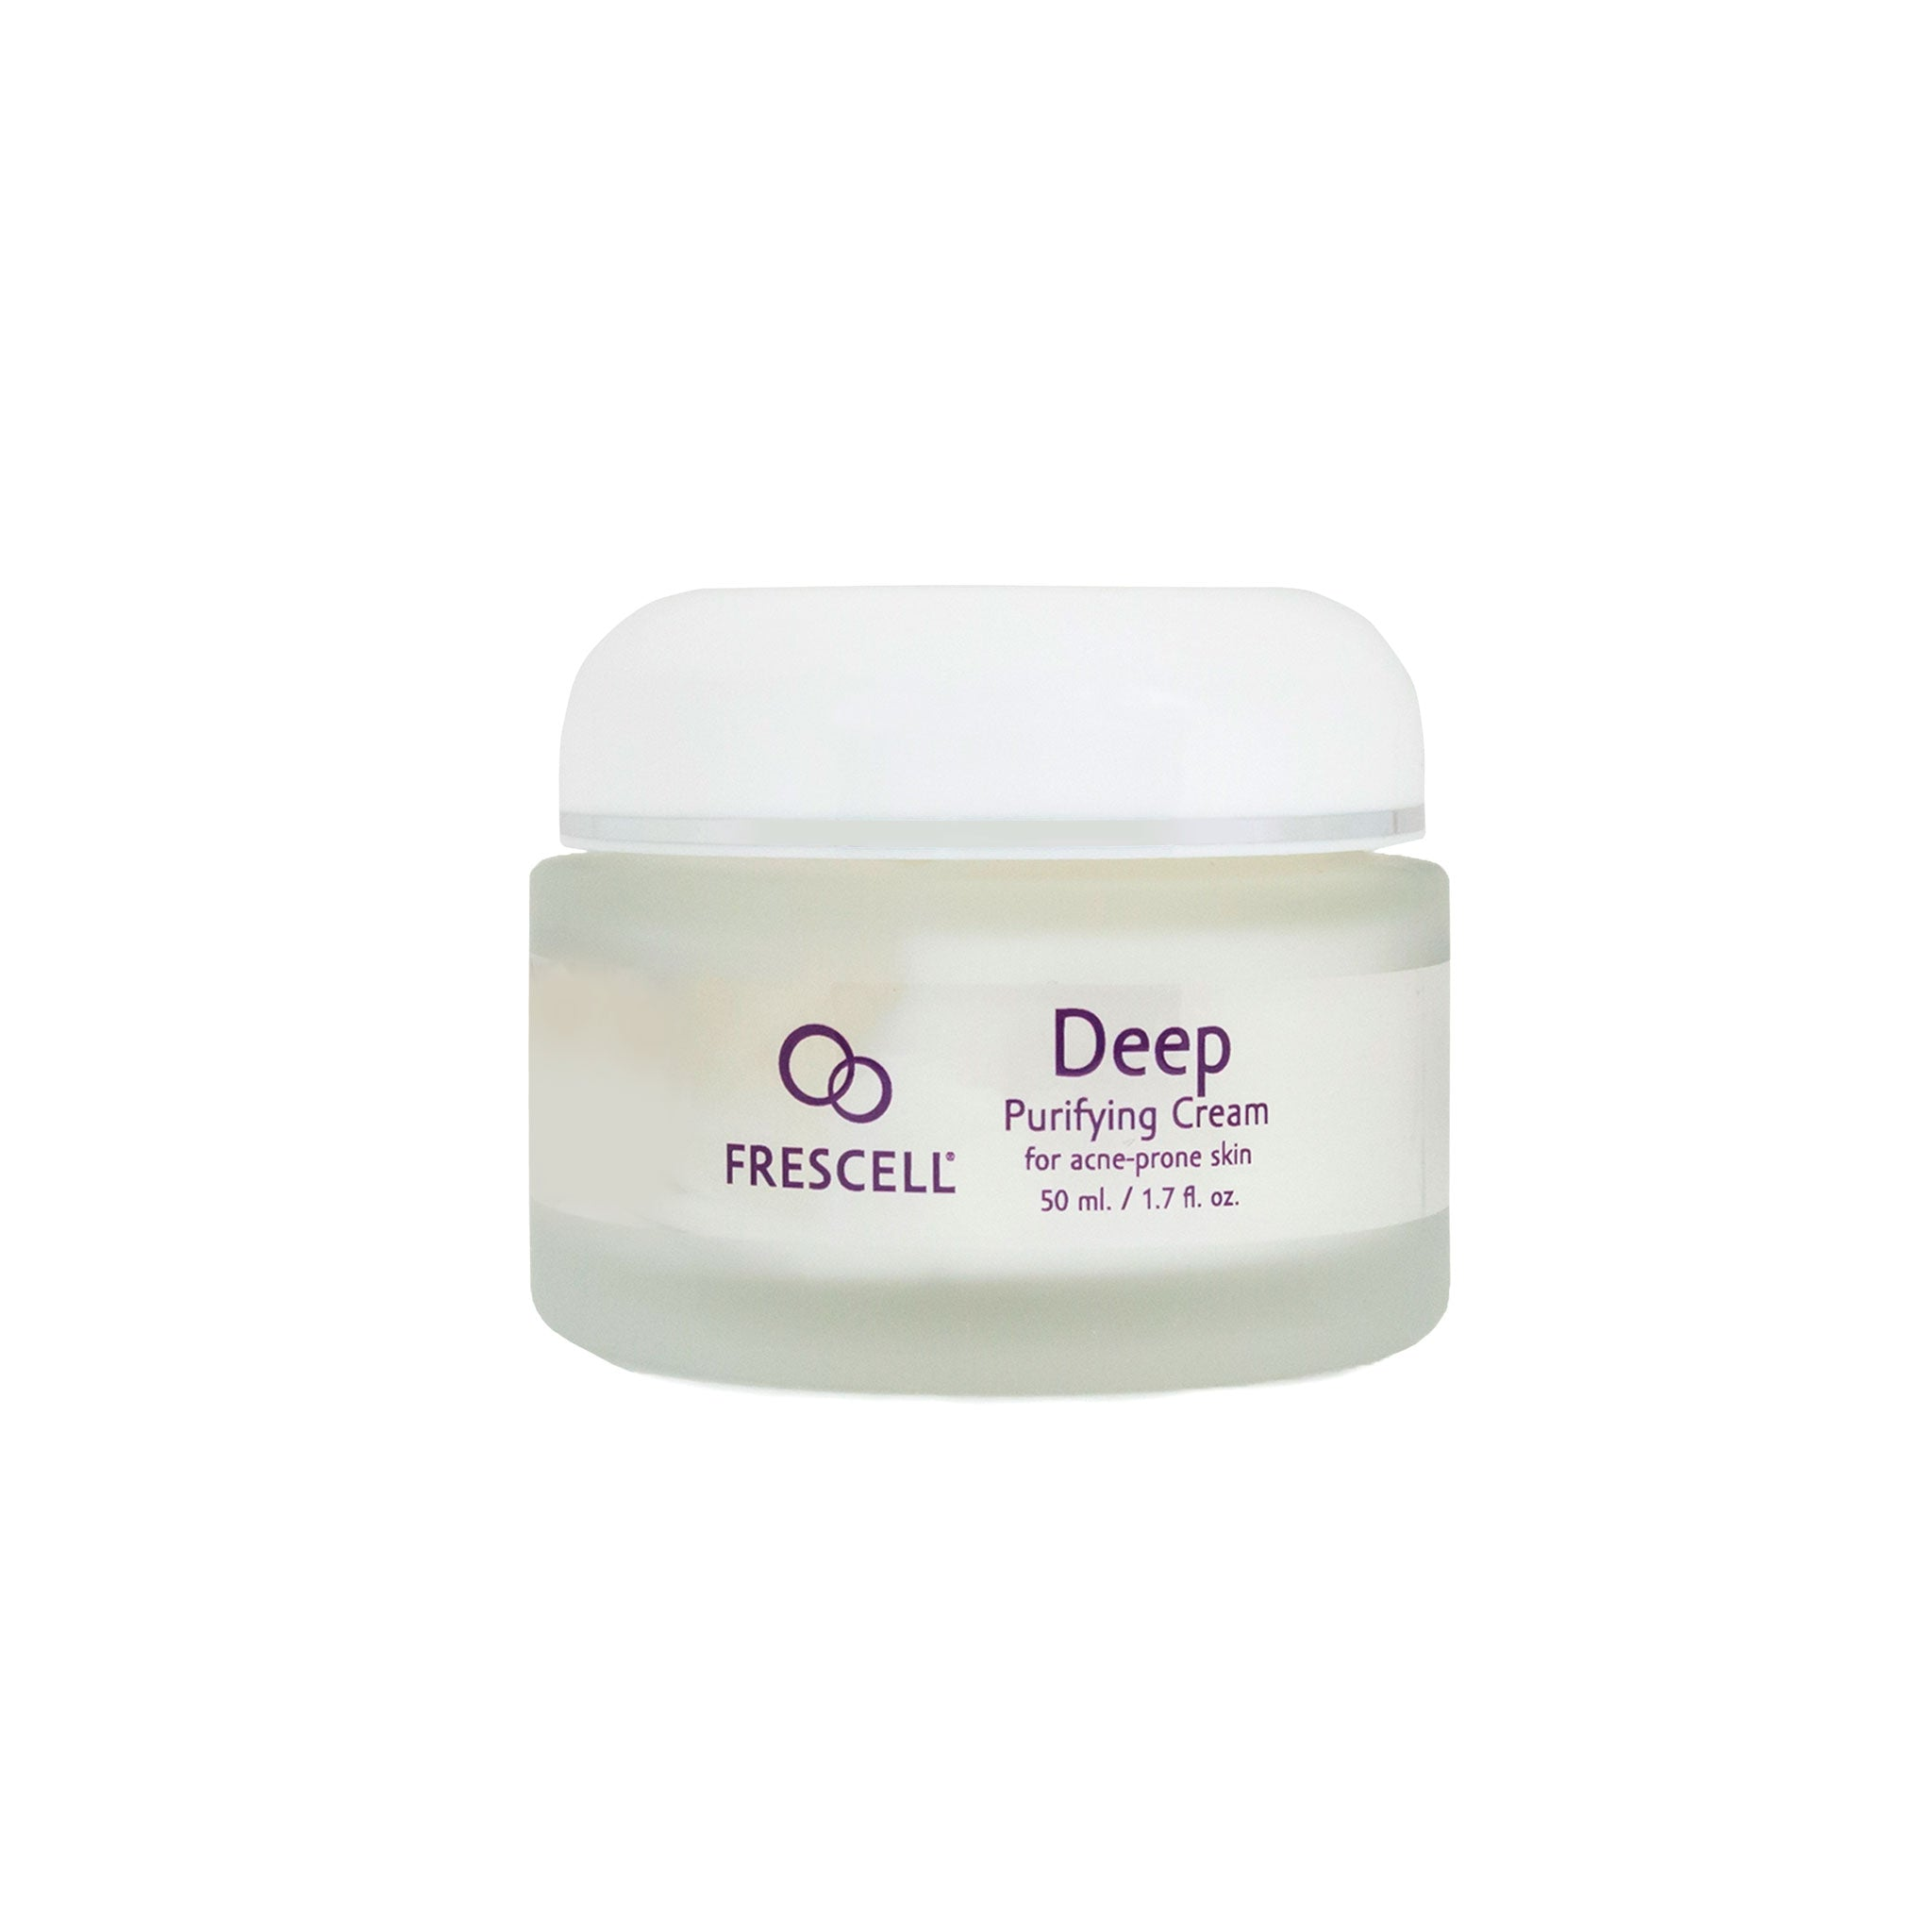 FRESCELL Deep Purifying Cream for acne-prone skin 50 ml